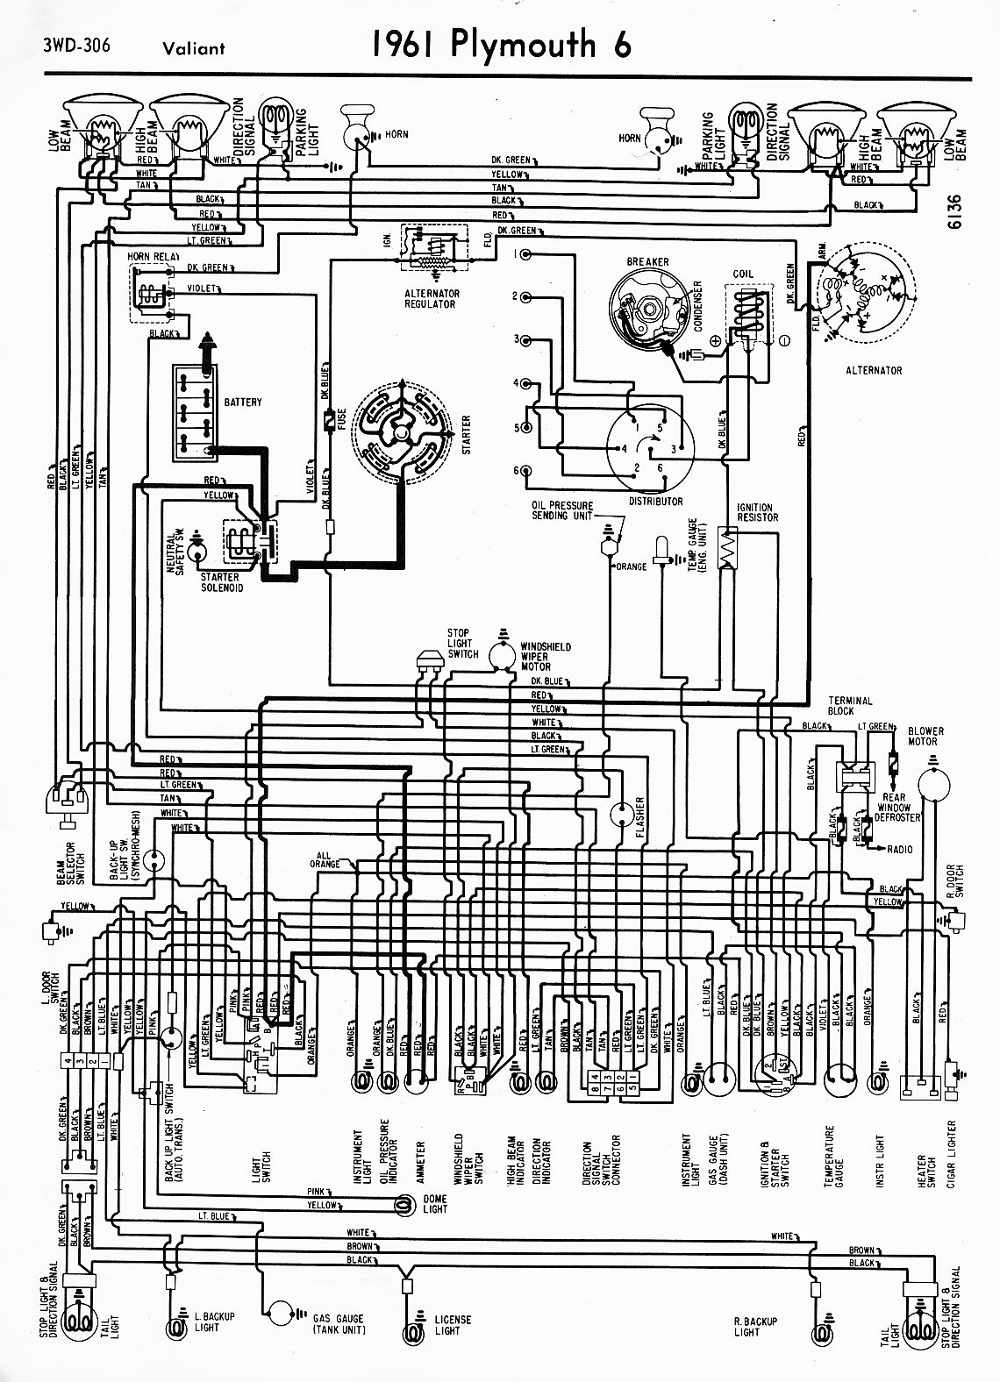 wiring diagram for 1966 plymouth valiant wiring diagram expert 1966 plymouth satellite wiring diagram [ 1000 x 1382 Pixel ]